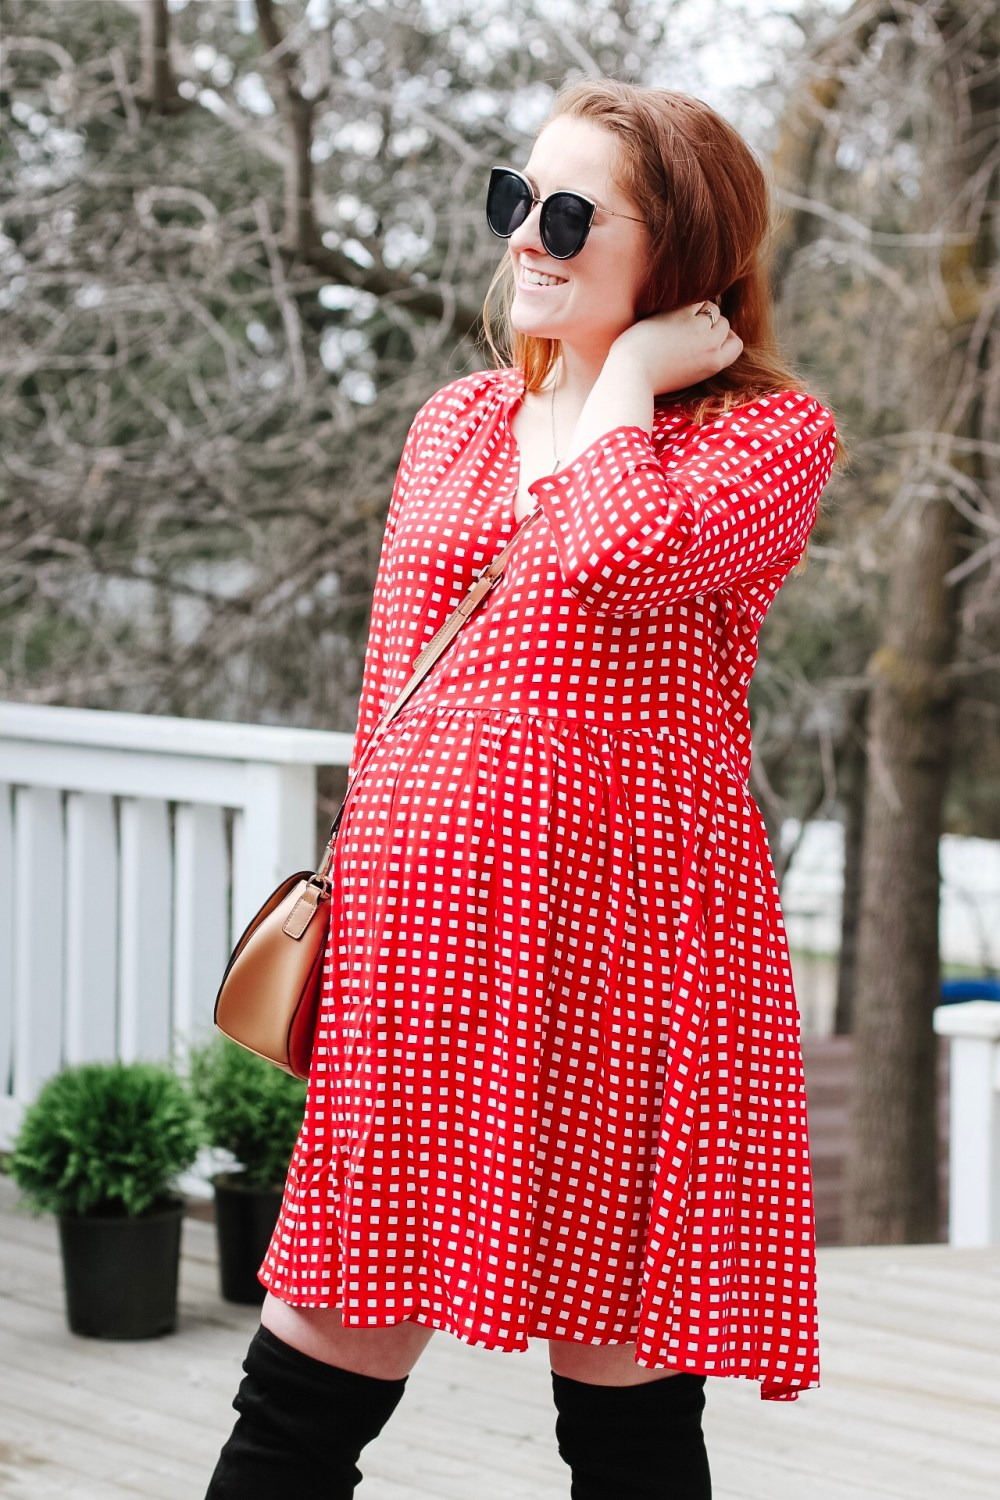 517b21631 ... Looking for pregnancy outfit ideas? Check out Hannah, from the popular  Edmonton blog Honey What to wear ...